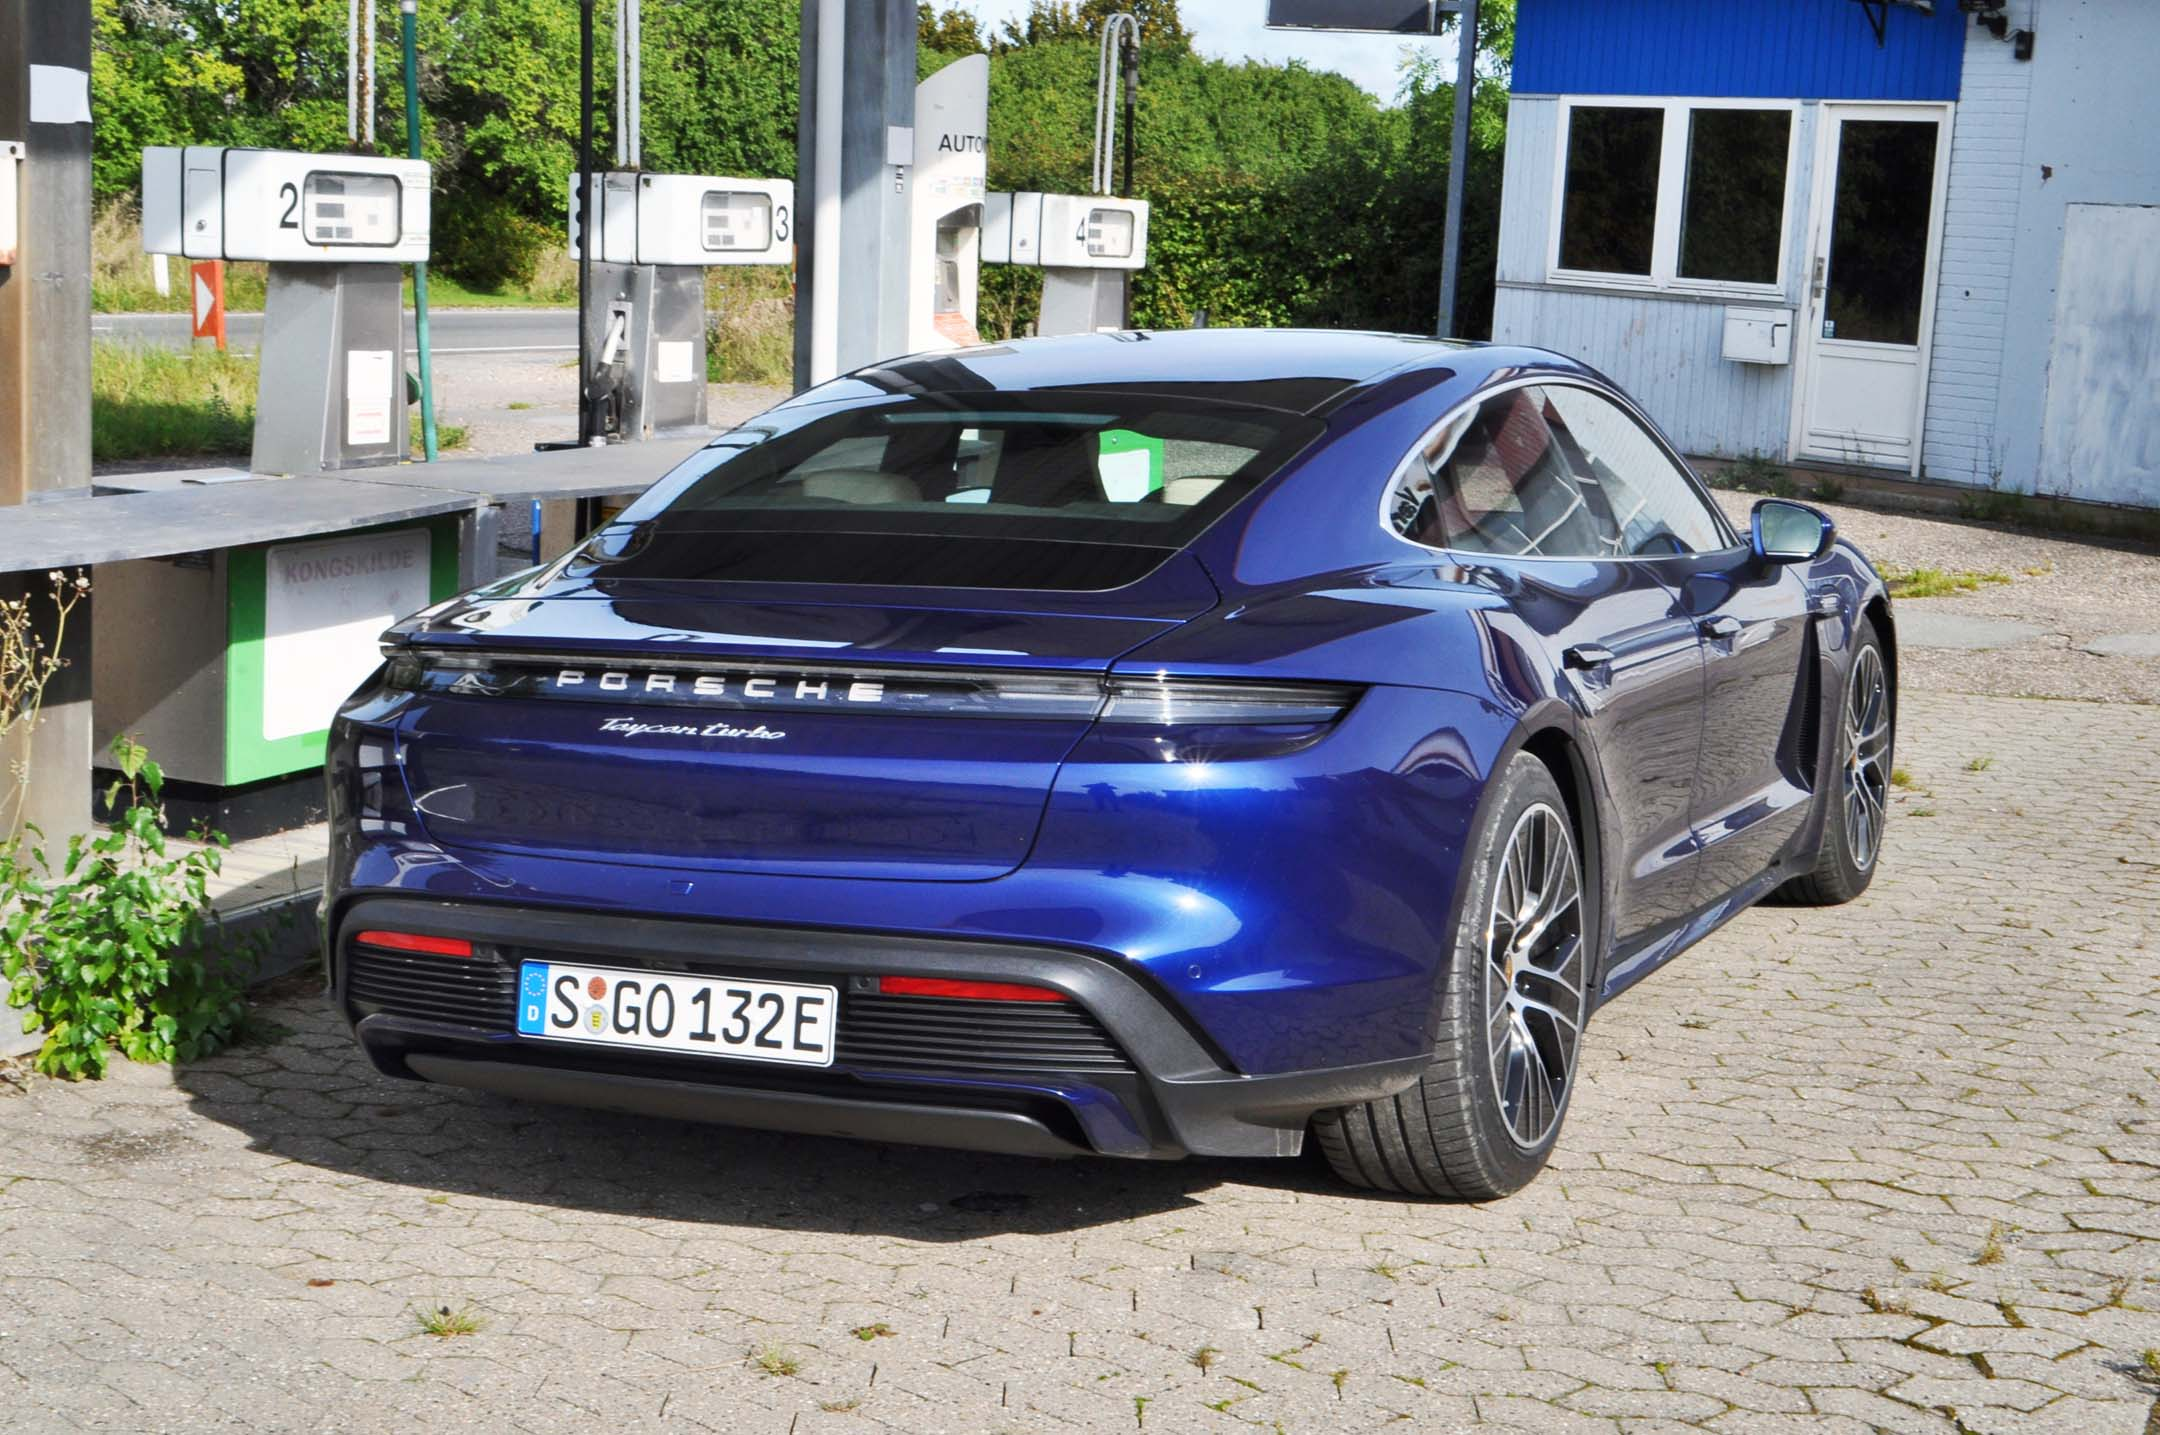 2020 Porsche Taycan Turbo And Turbo S First Drive Review Expert Reviews Autotrader Ca